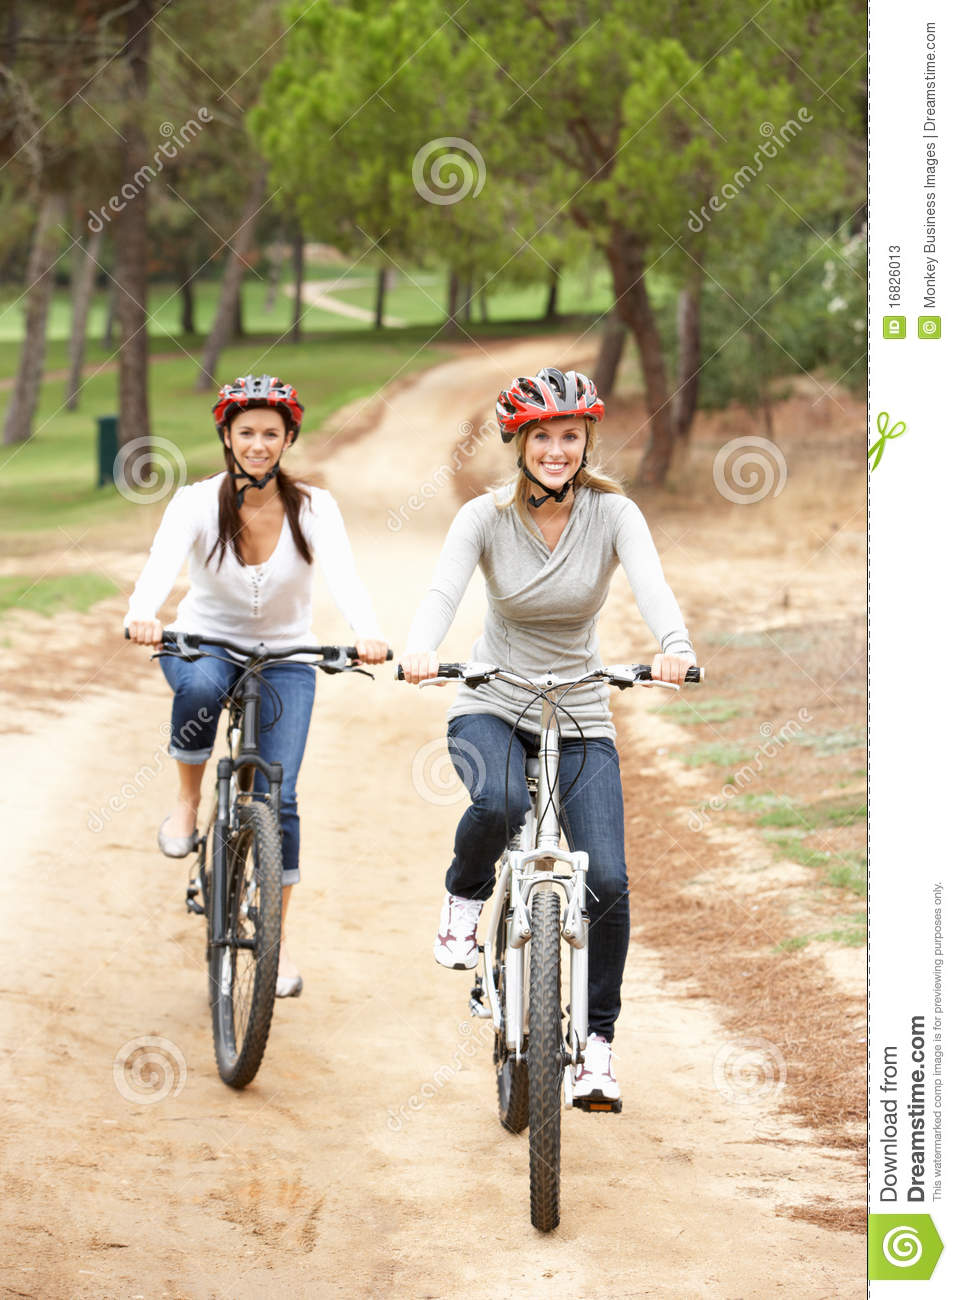 two women riding bicycle in park stock photos image